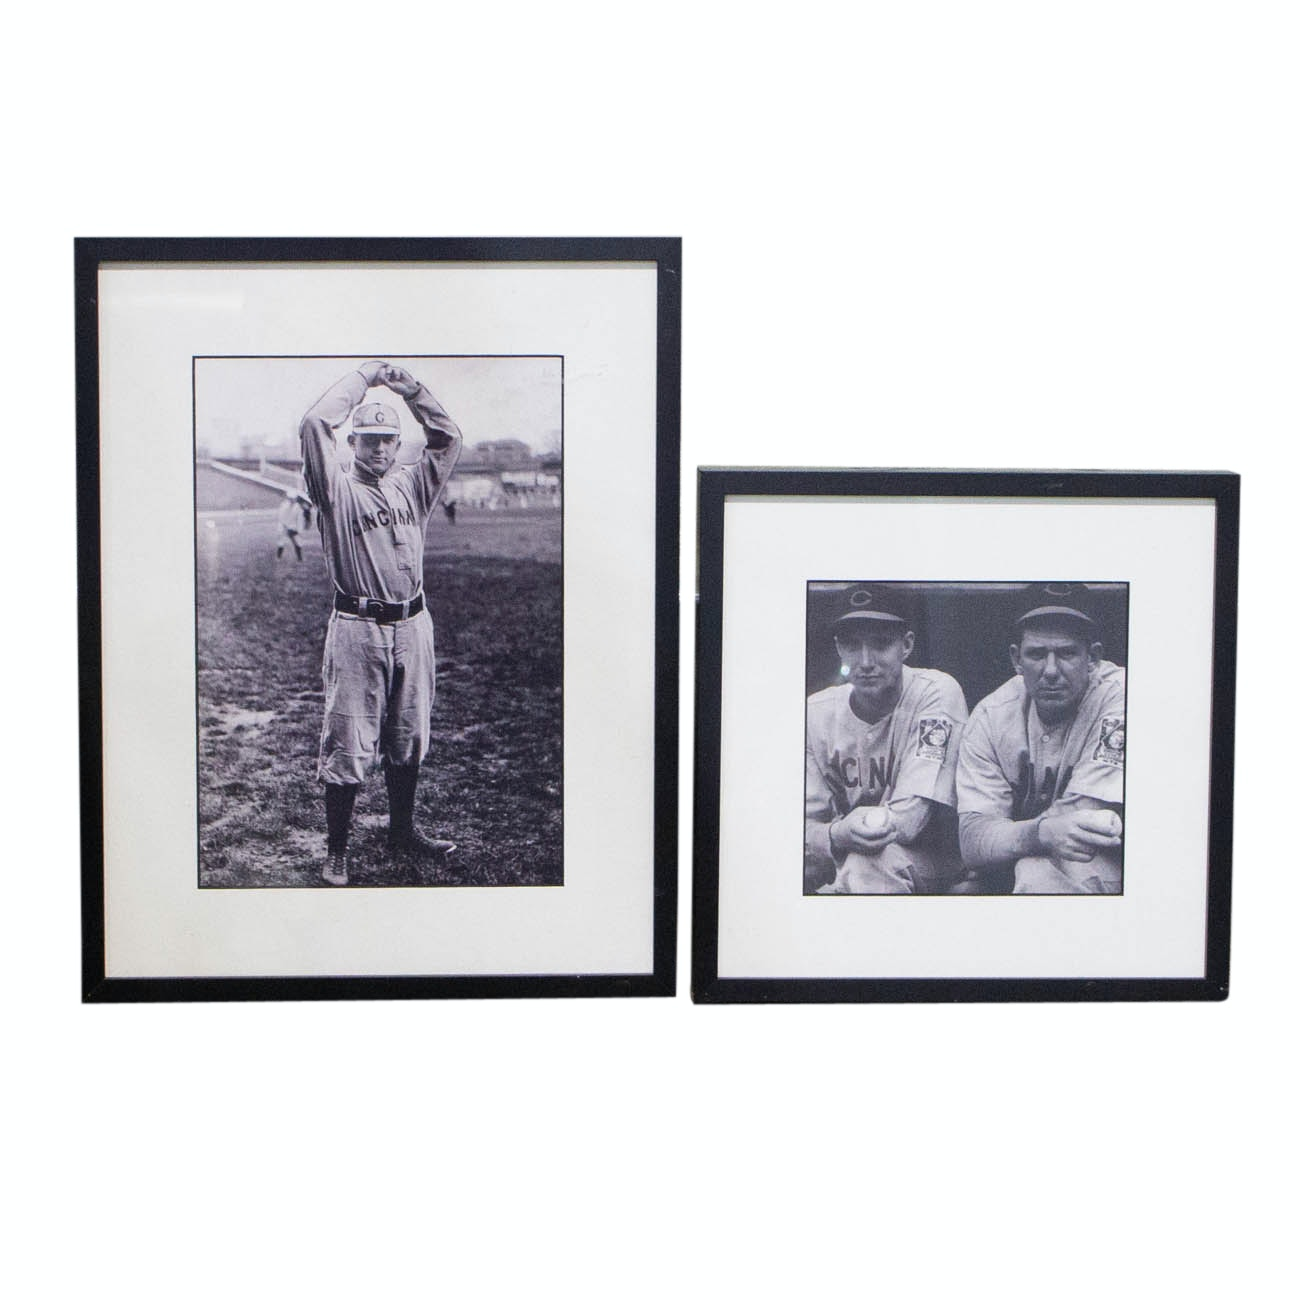 Pitching Greats Noodles Hahn, Bucky Walters, and Other Framed Photographs COA